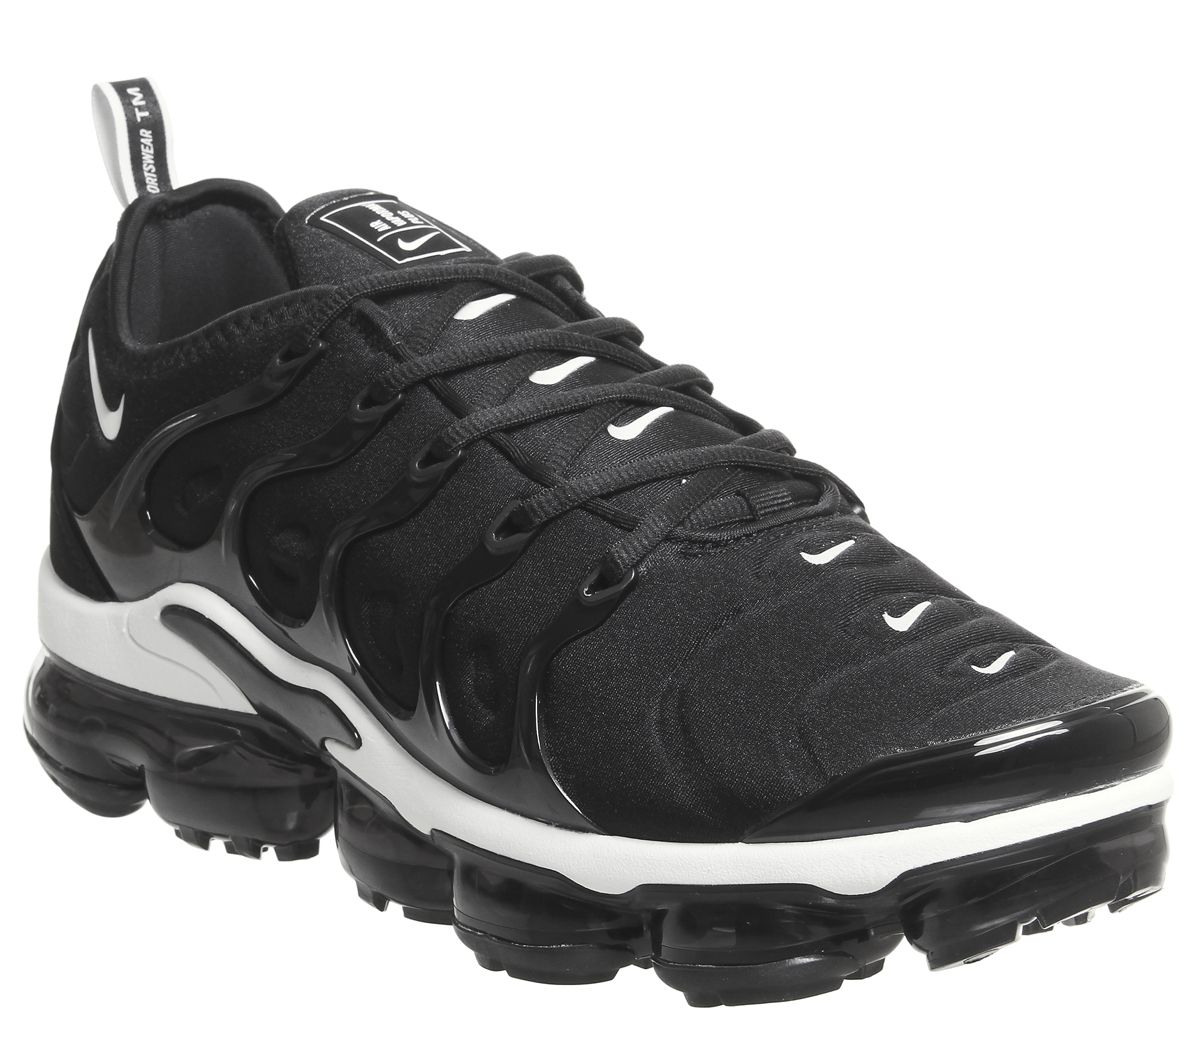 competitive price e0bf6 a2824 Air Vapormax Plus Trainers